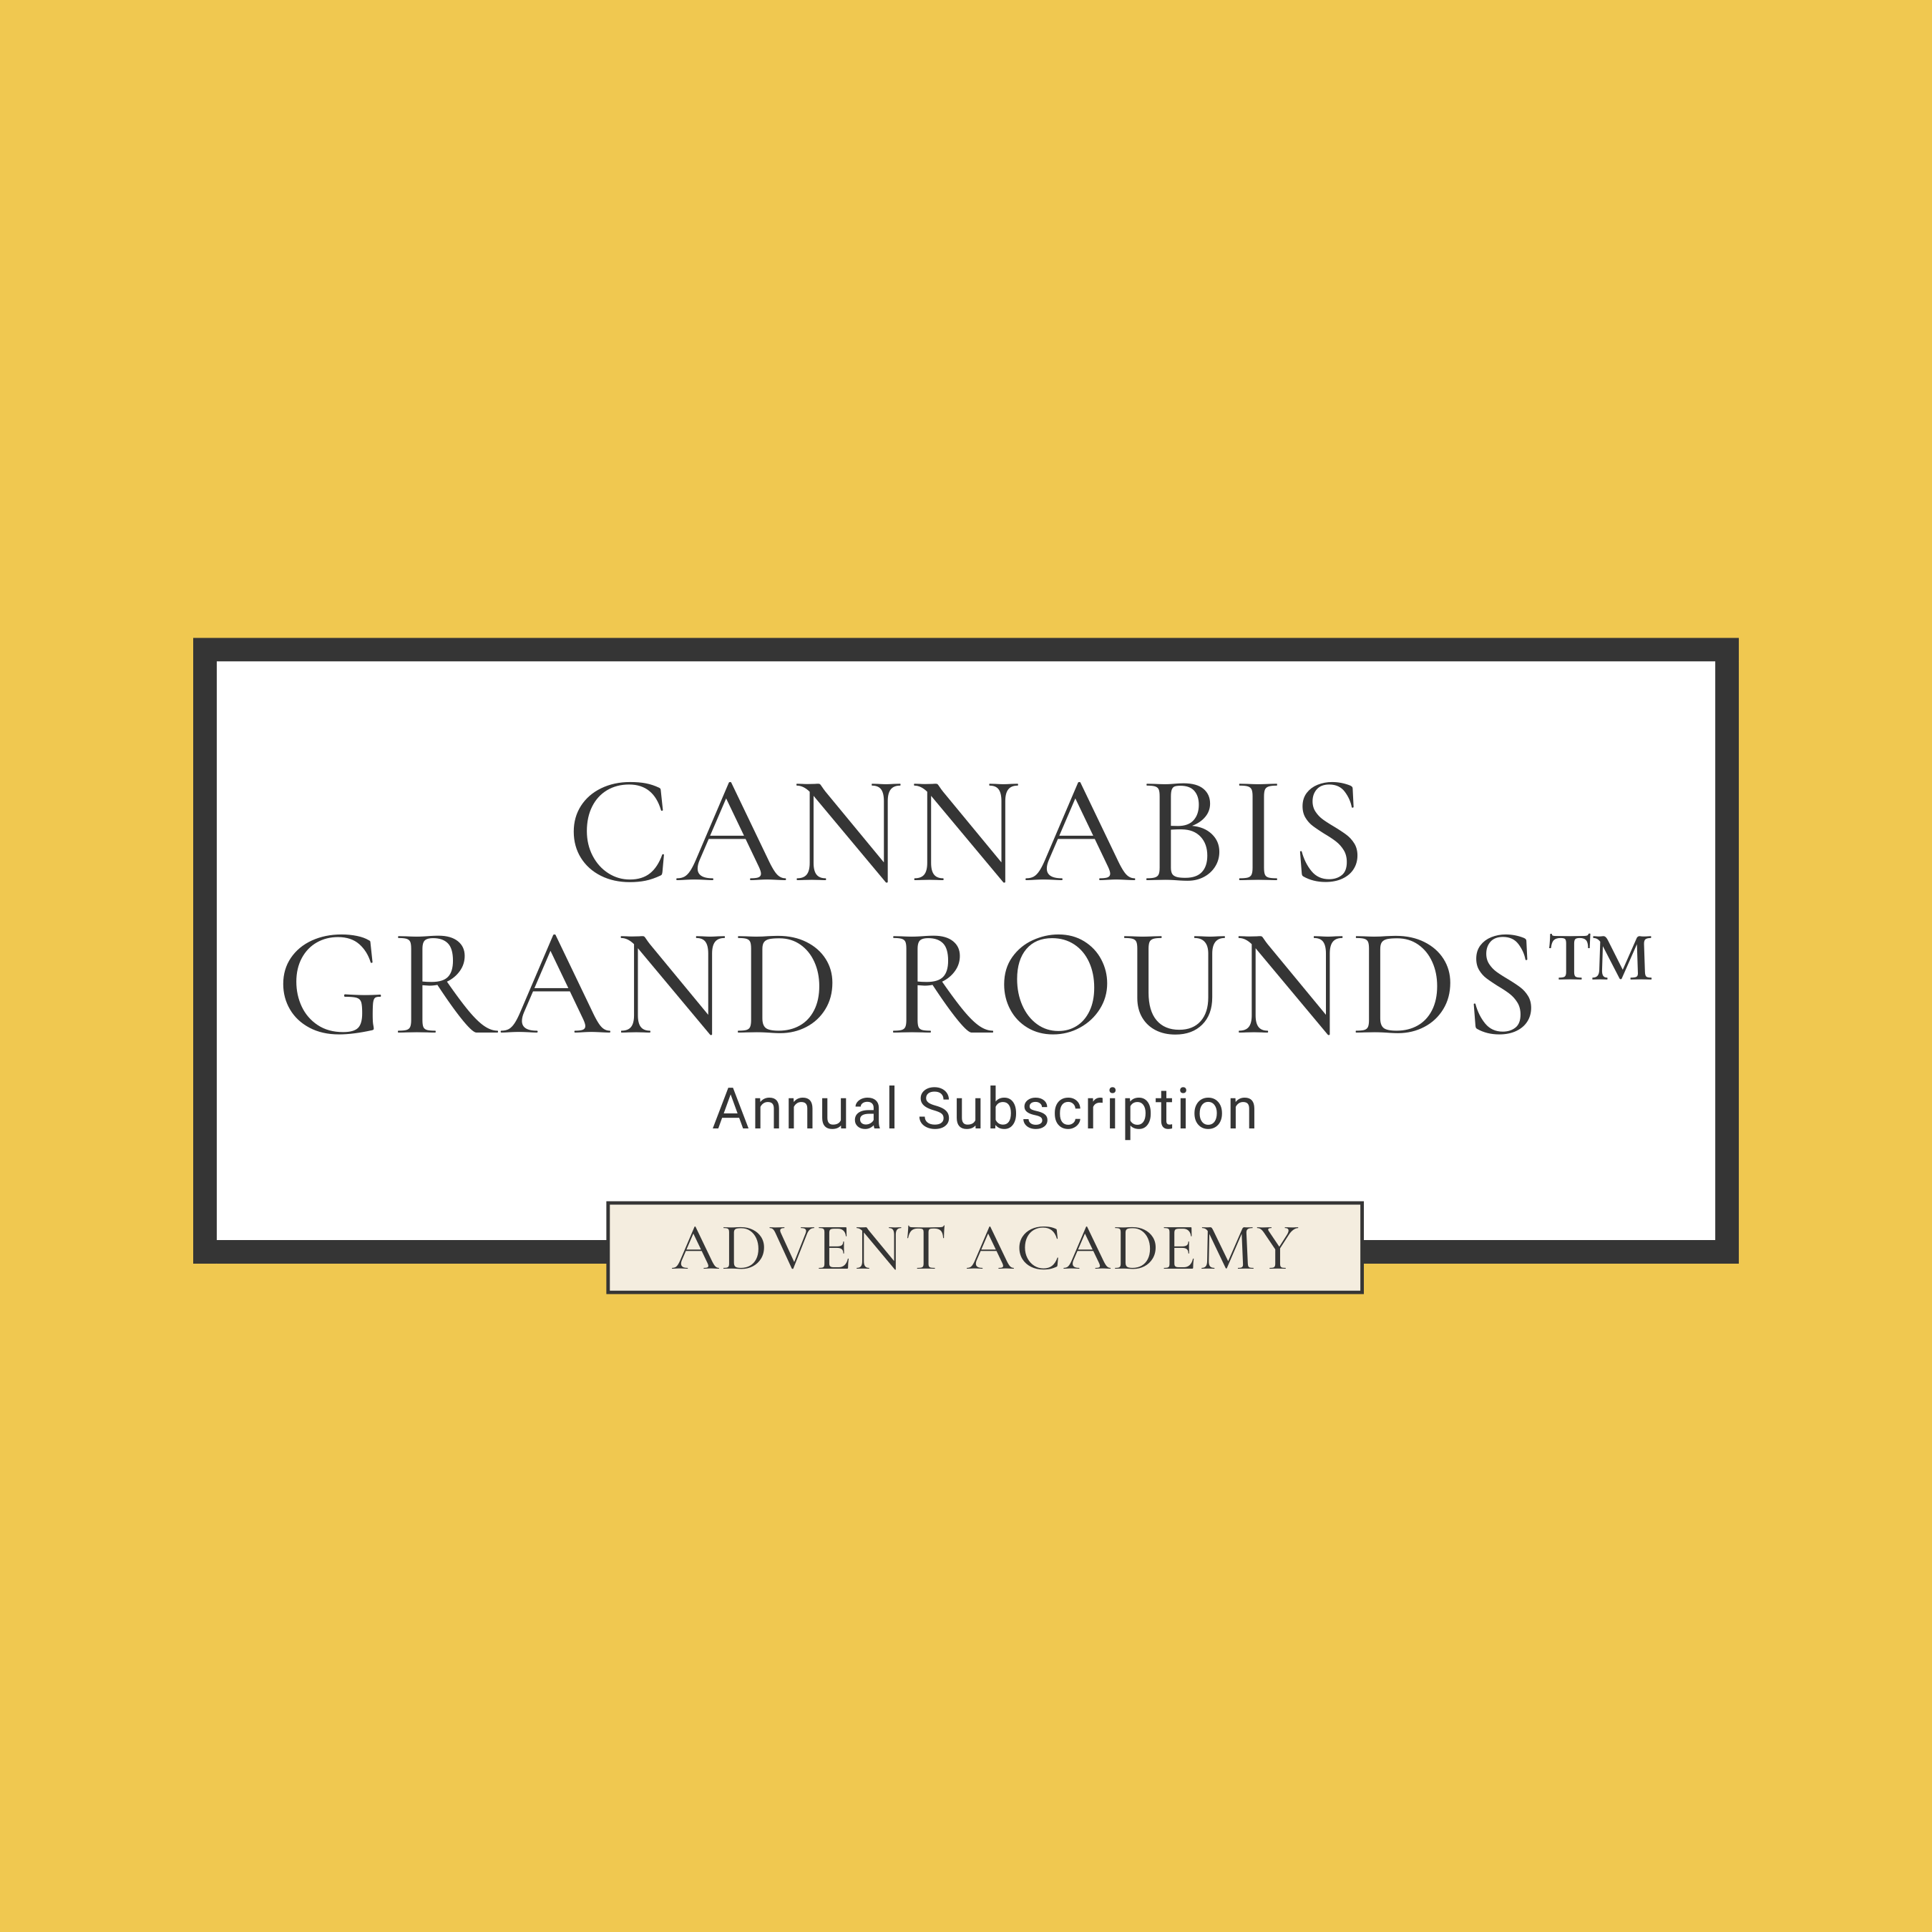 Annual Subscription to Cannabis Grand Rounds